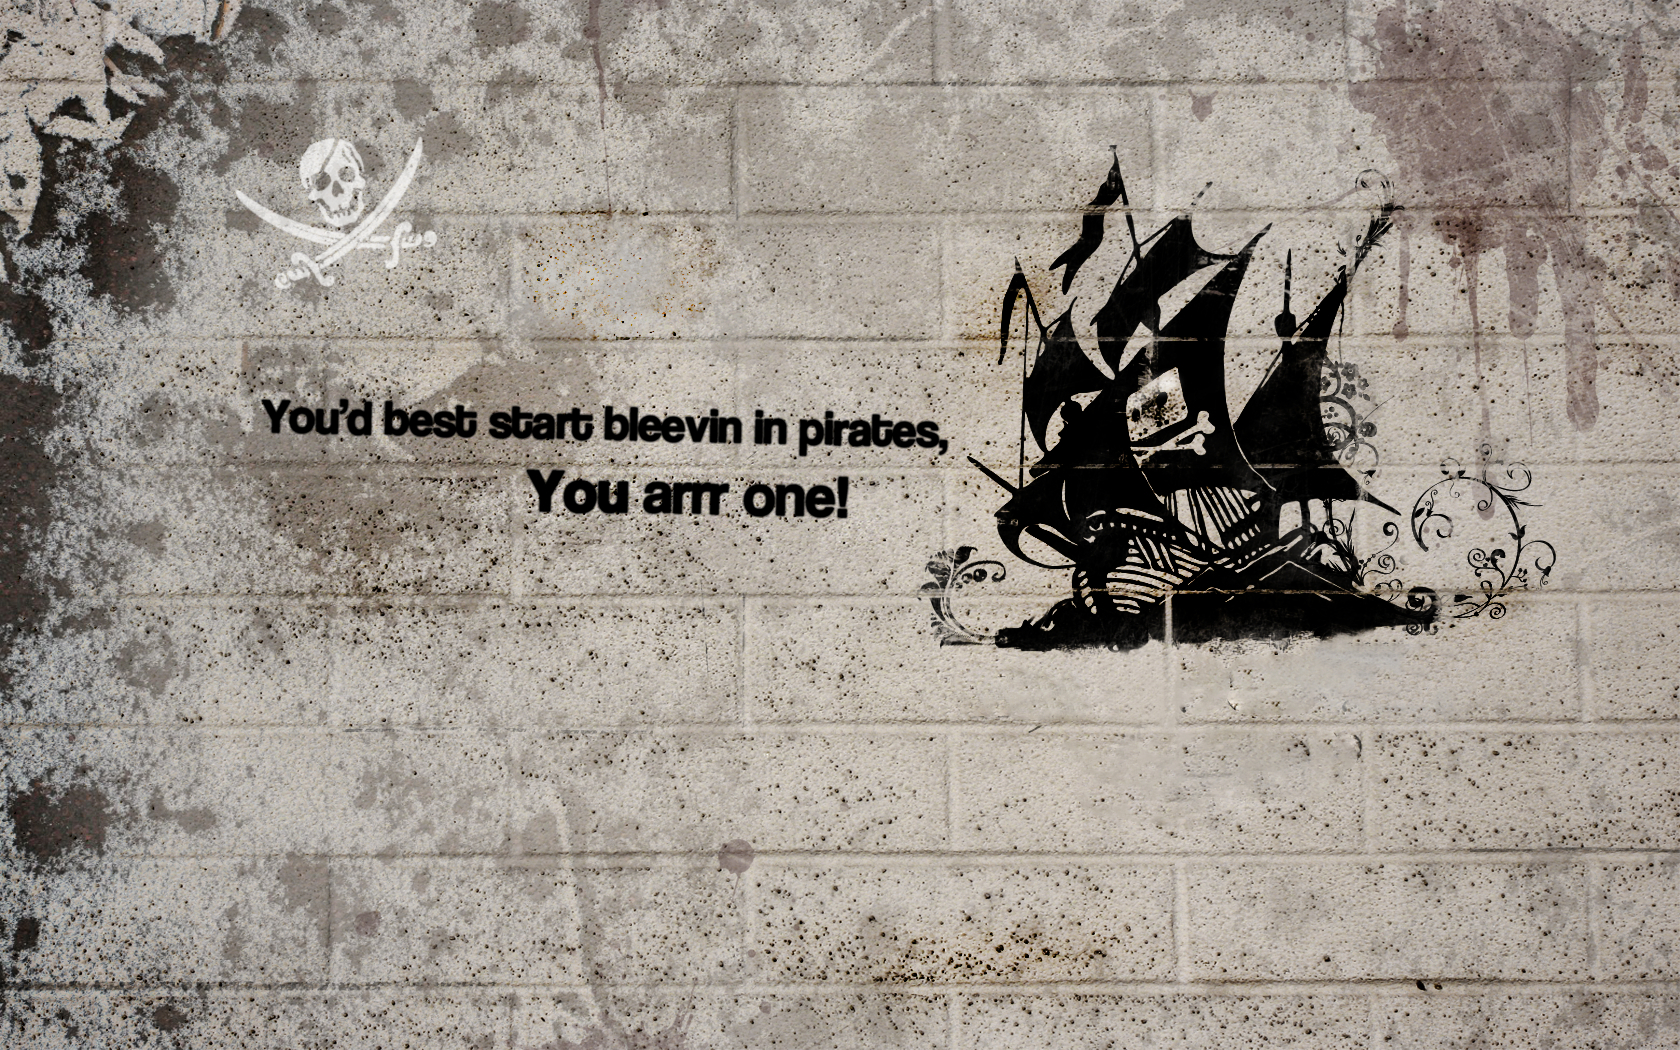 pirate ship text Quotes HD Wallpaper